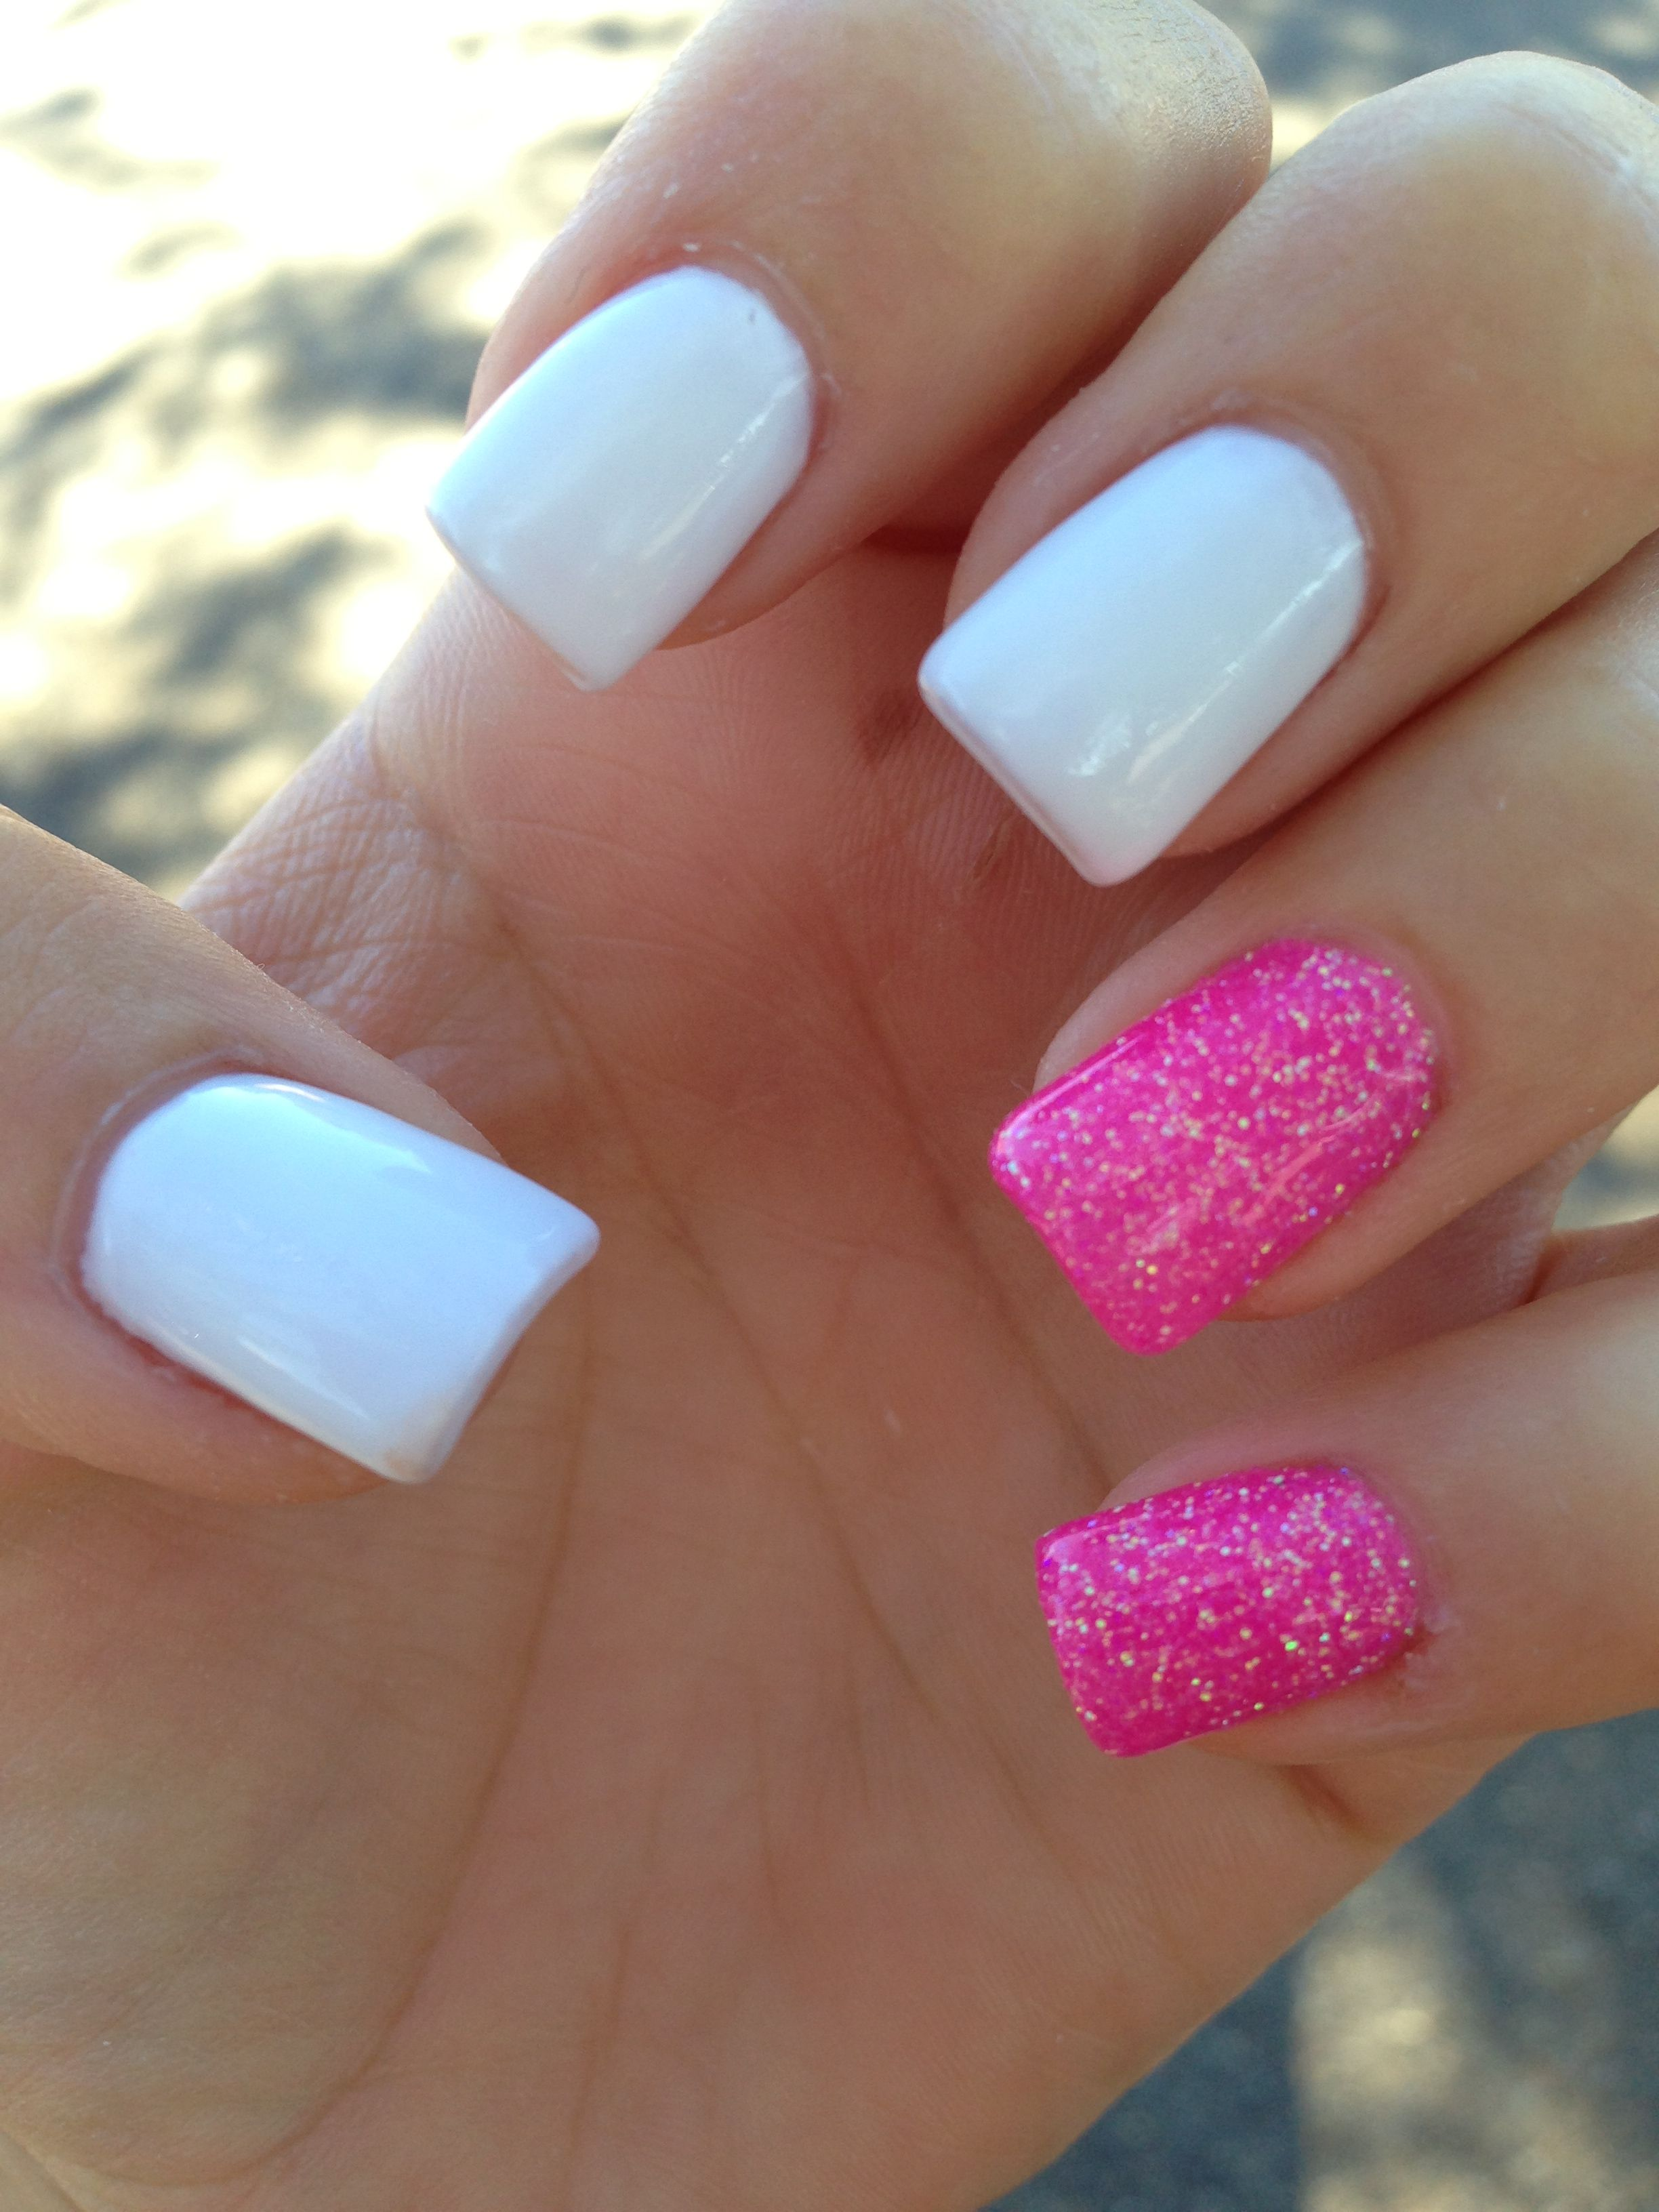 OMG!!!!! I LUVVV THESE NAILS <3 im going to go get my nails done ...